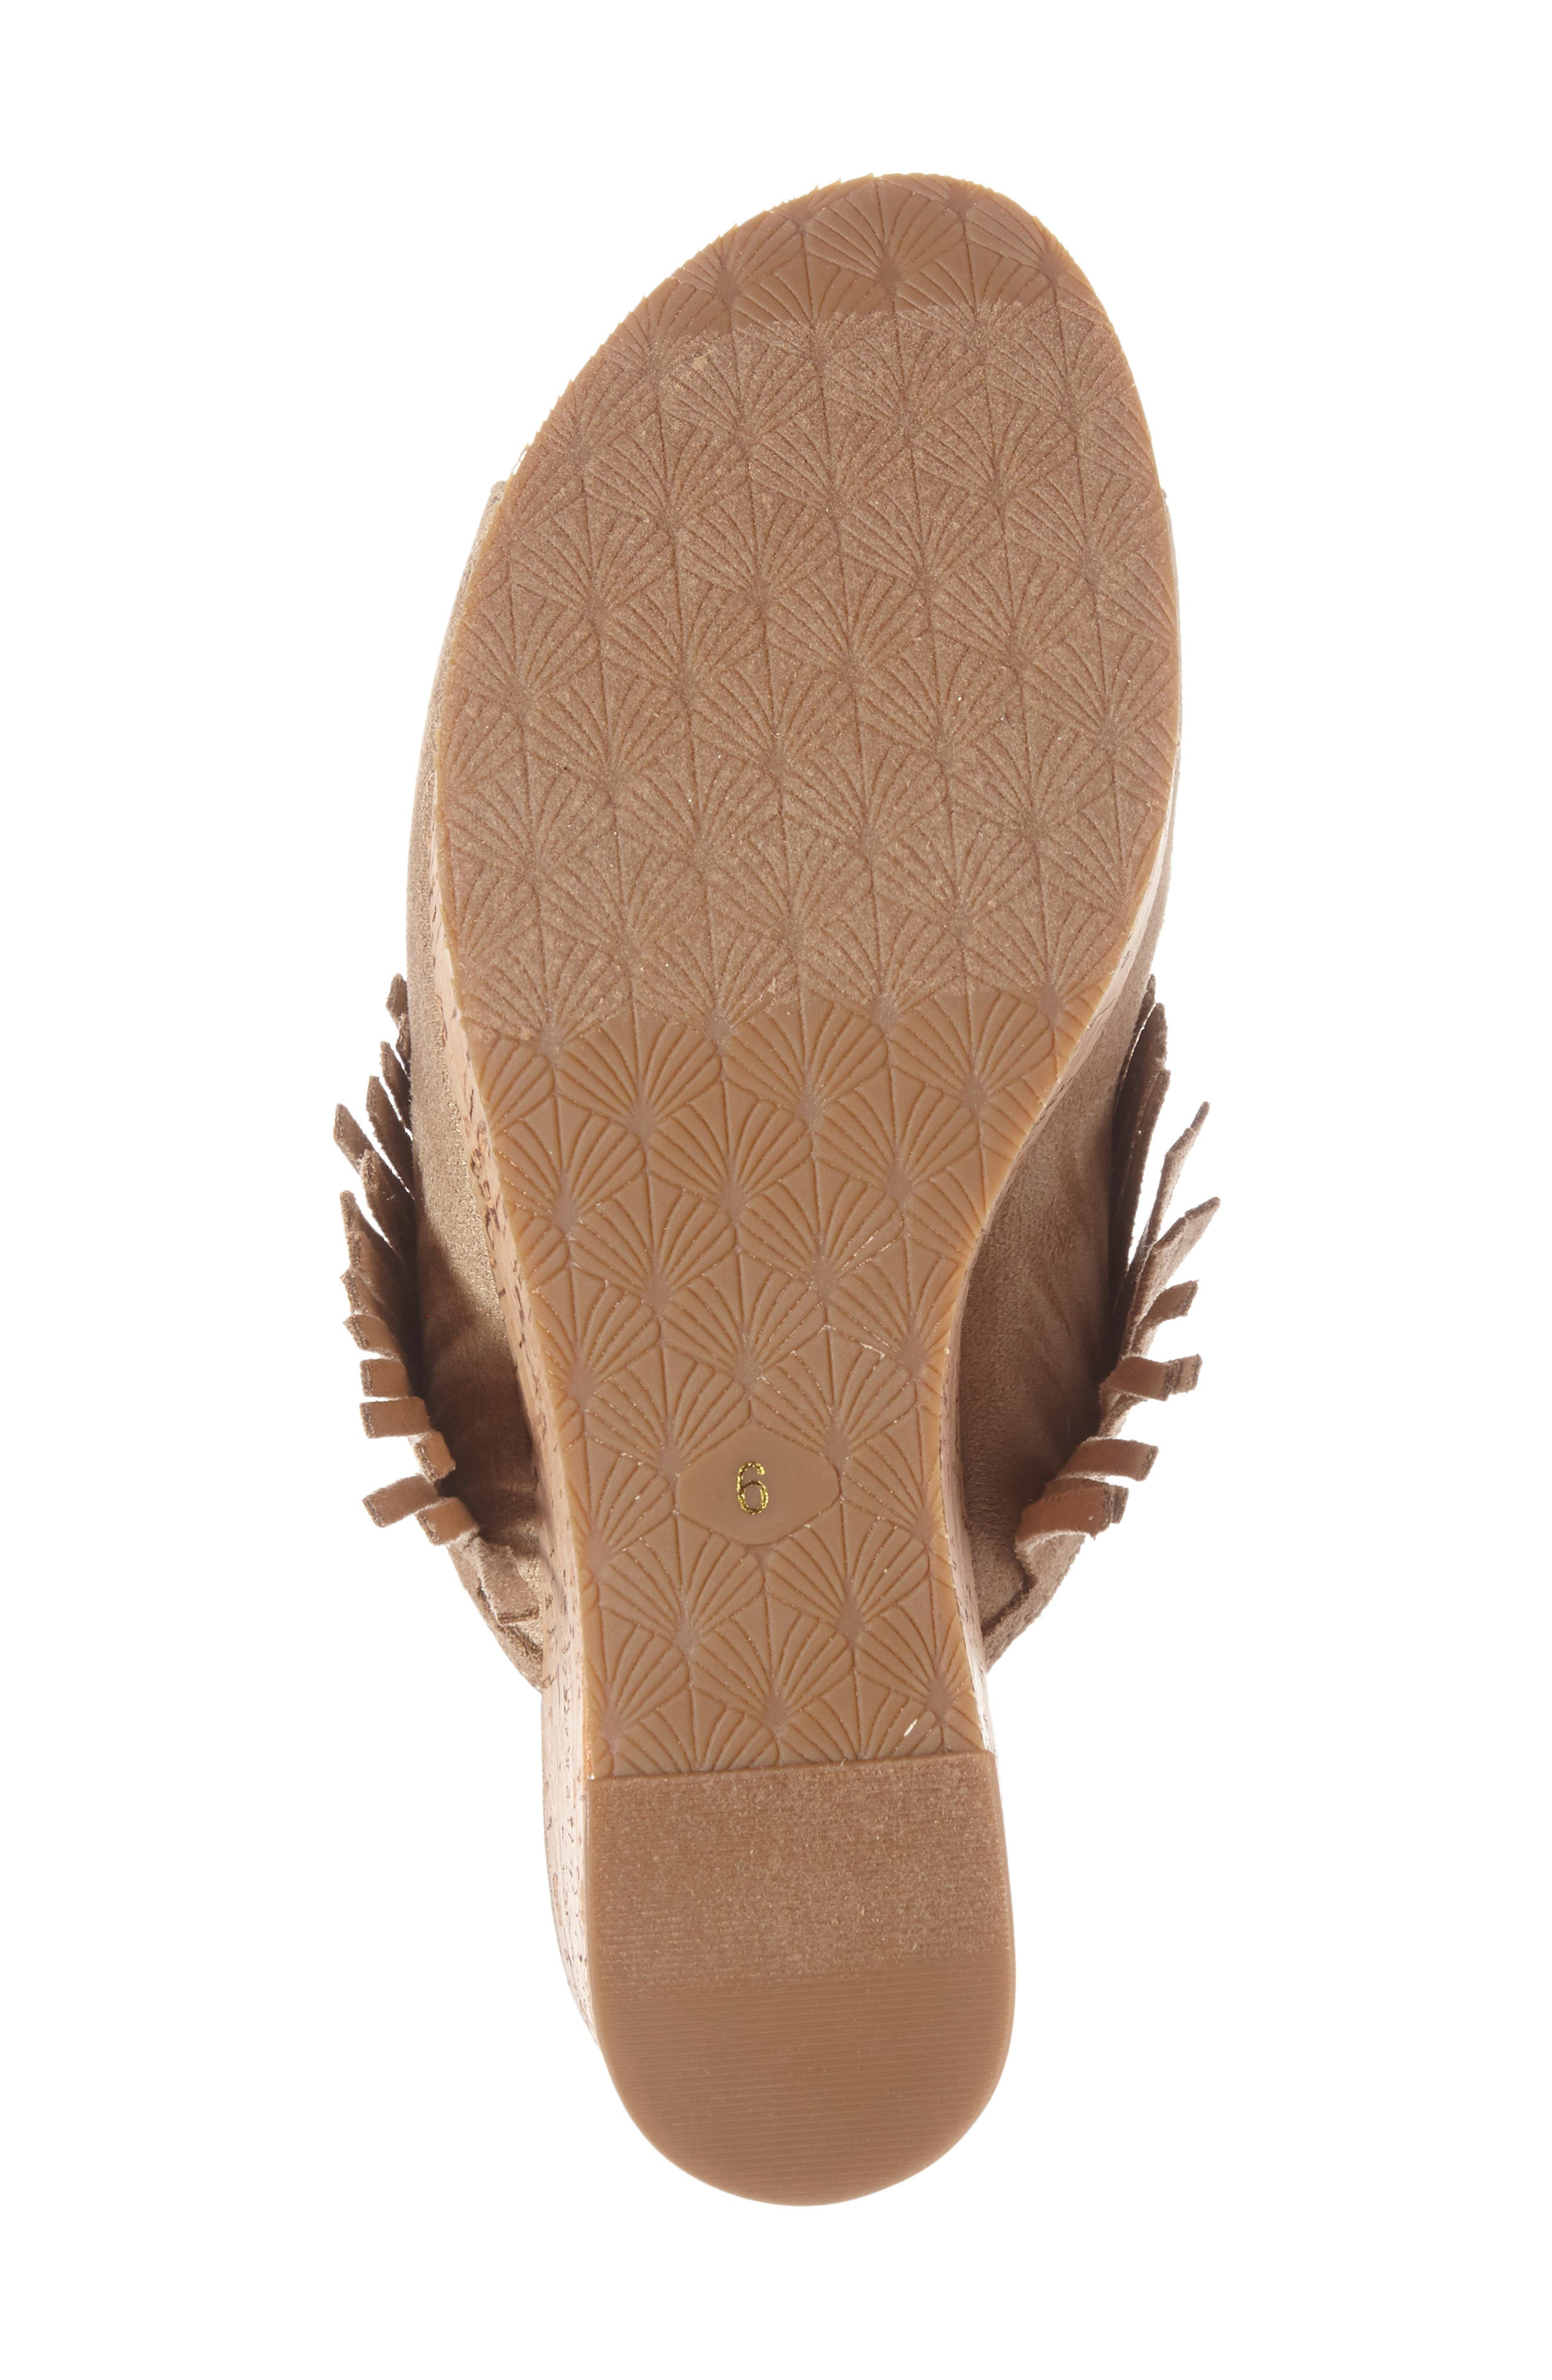 ARIAT, Unbridled Leigh Fringe Mule, Alternate thumbnail 4, color, SAND FABRIC